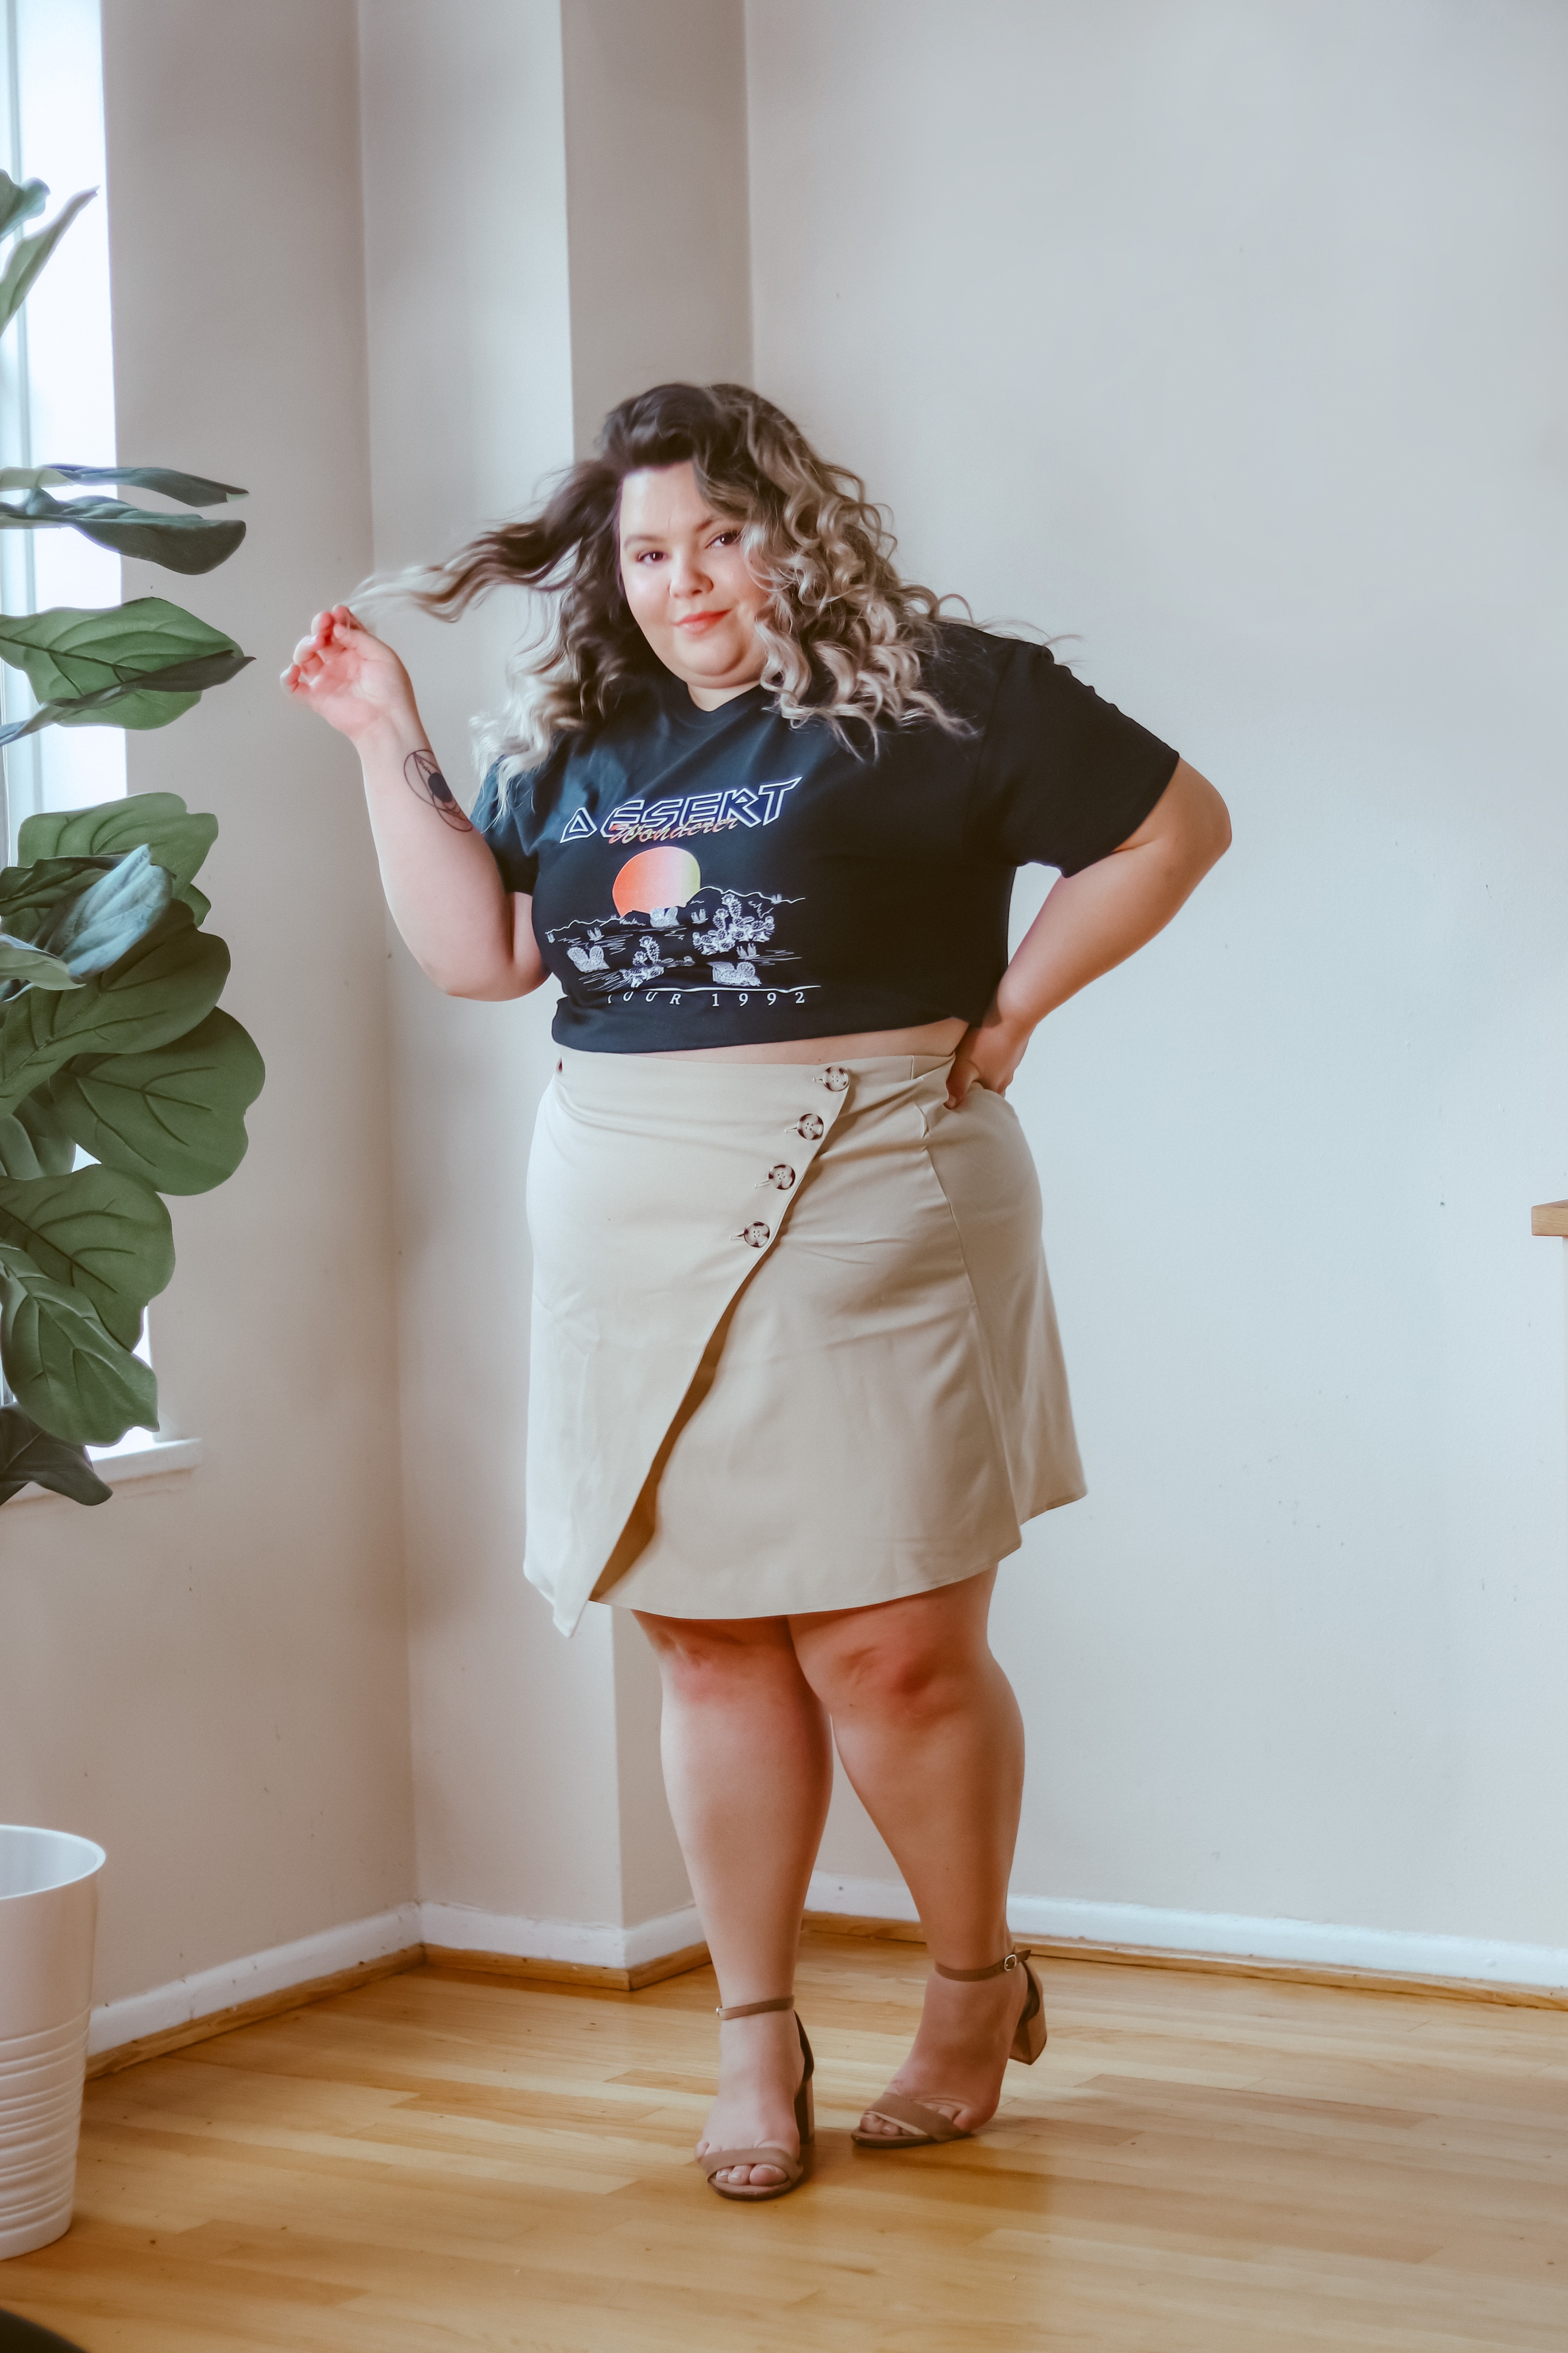 Chicago Plus Size Petite Fashion Blogger, influencer, and model Natalie in the City Craig reviews Nasty Gal.